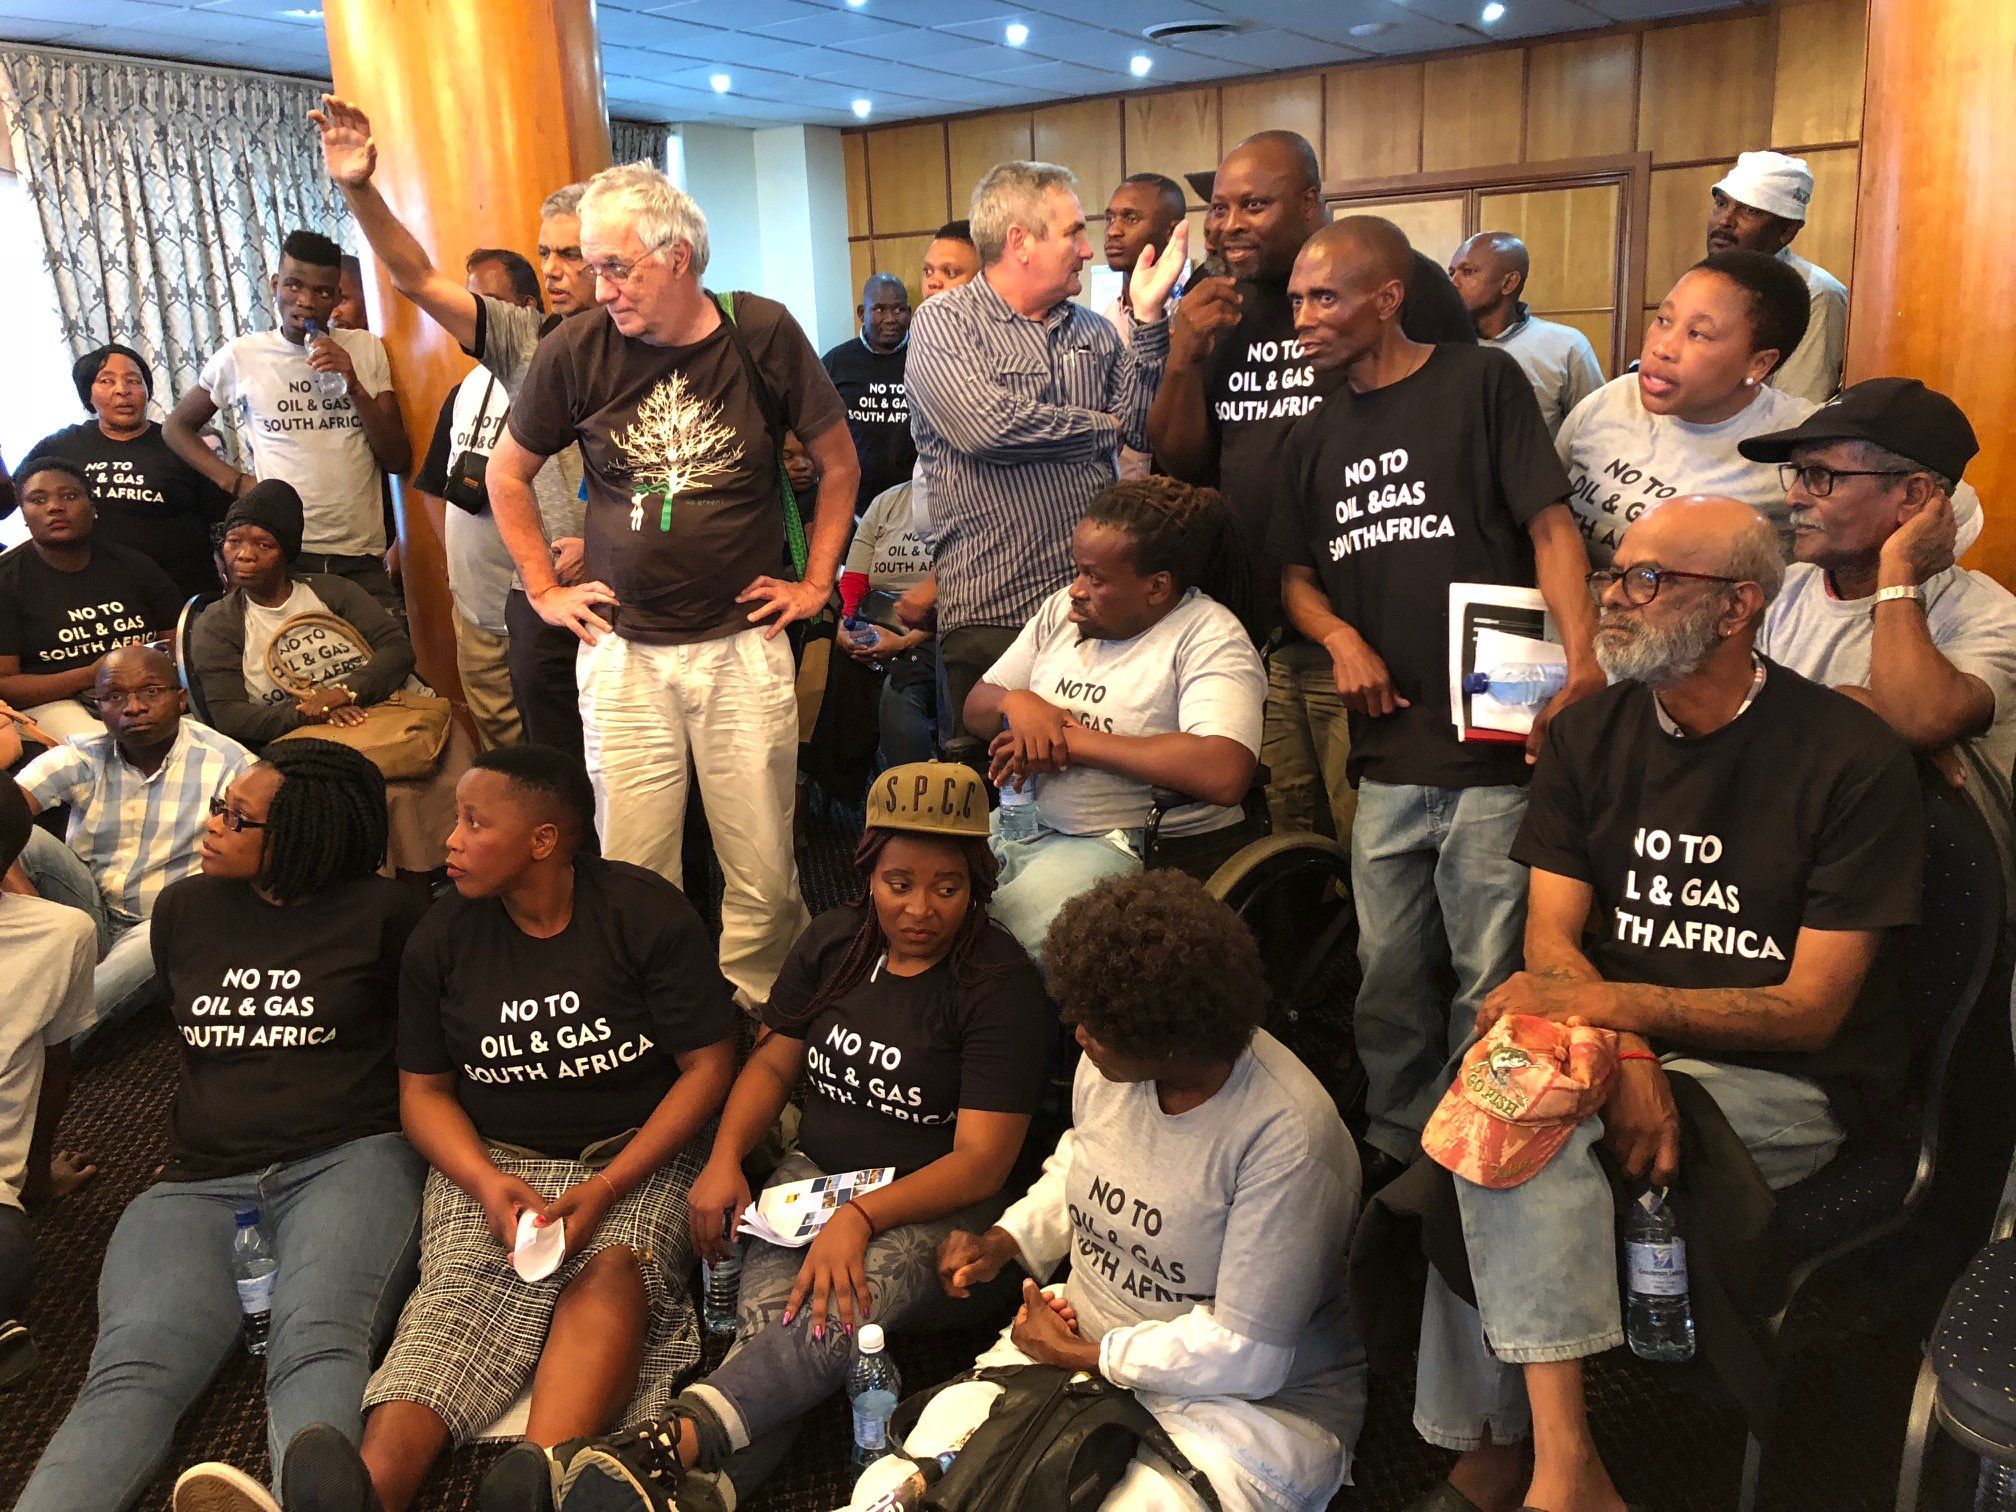 Meeting on gas and oil exploration descends into chaos